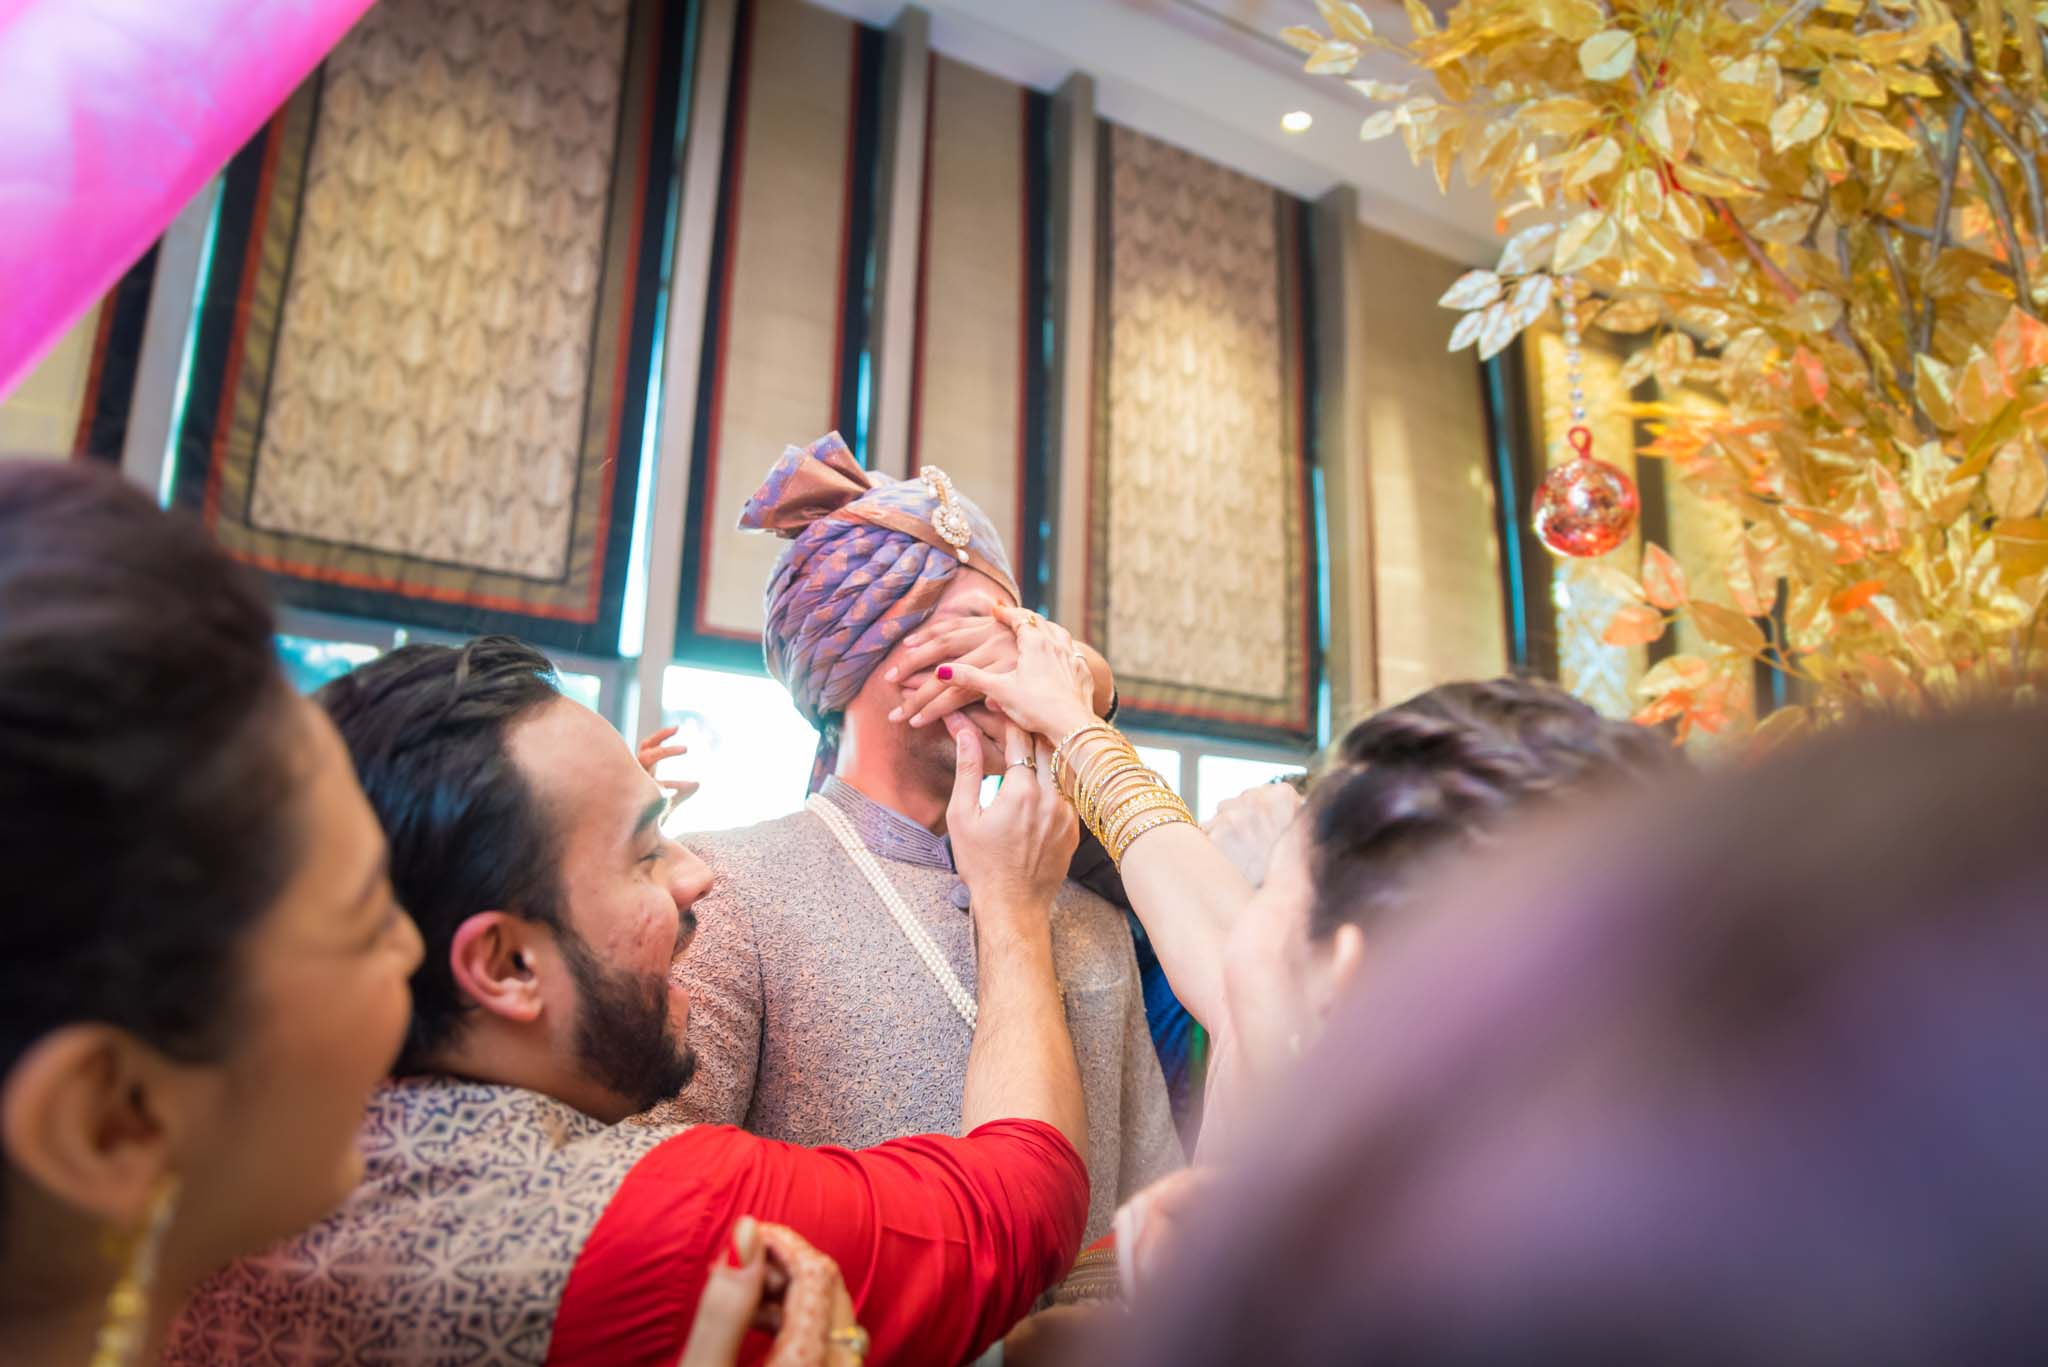 StRegis-Palladium-Mumbai-Candid-Wedding-Photography-27